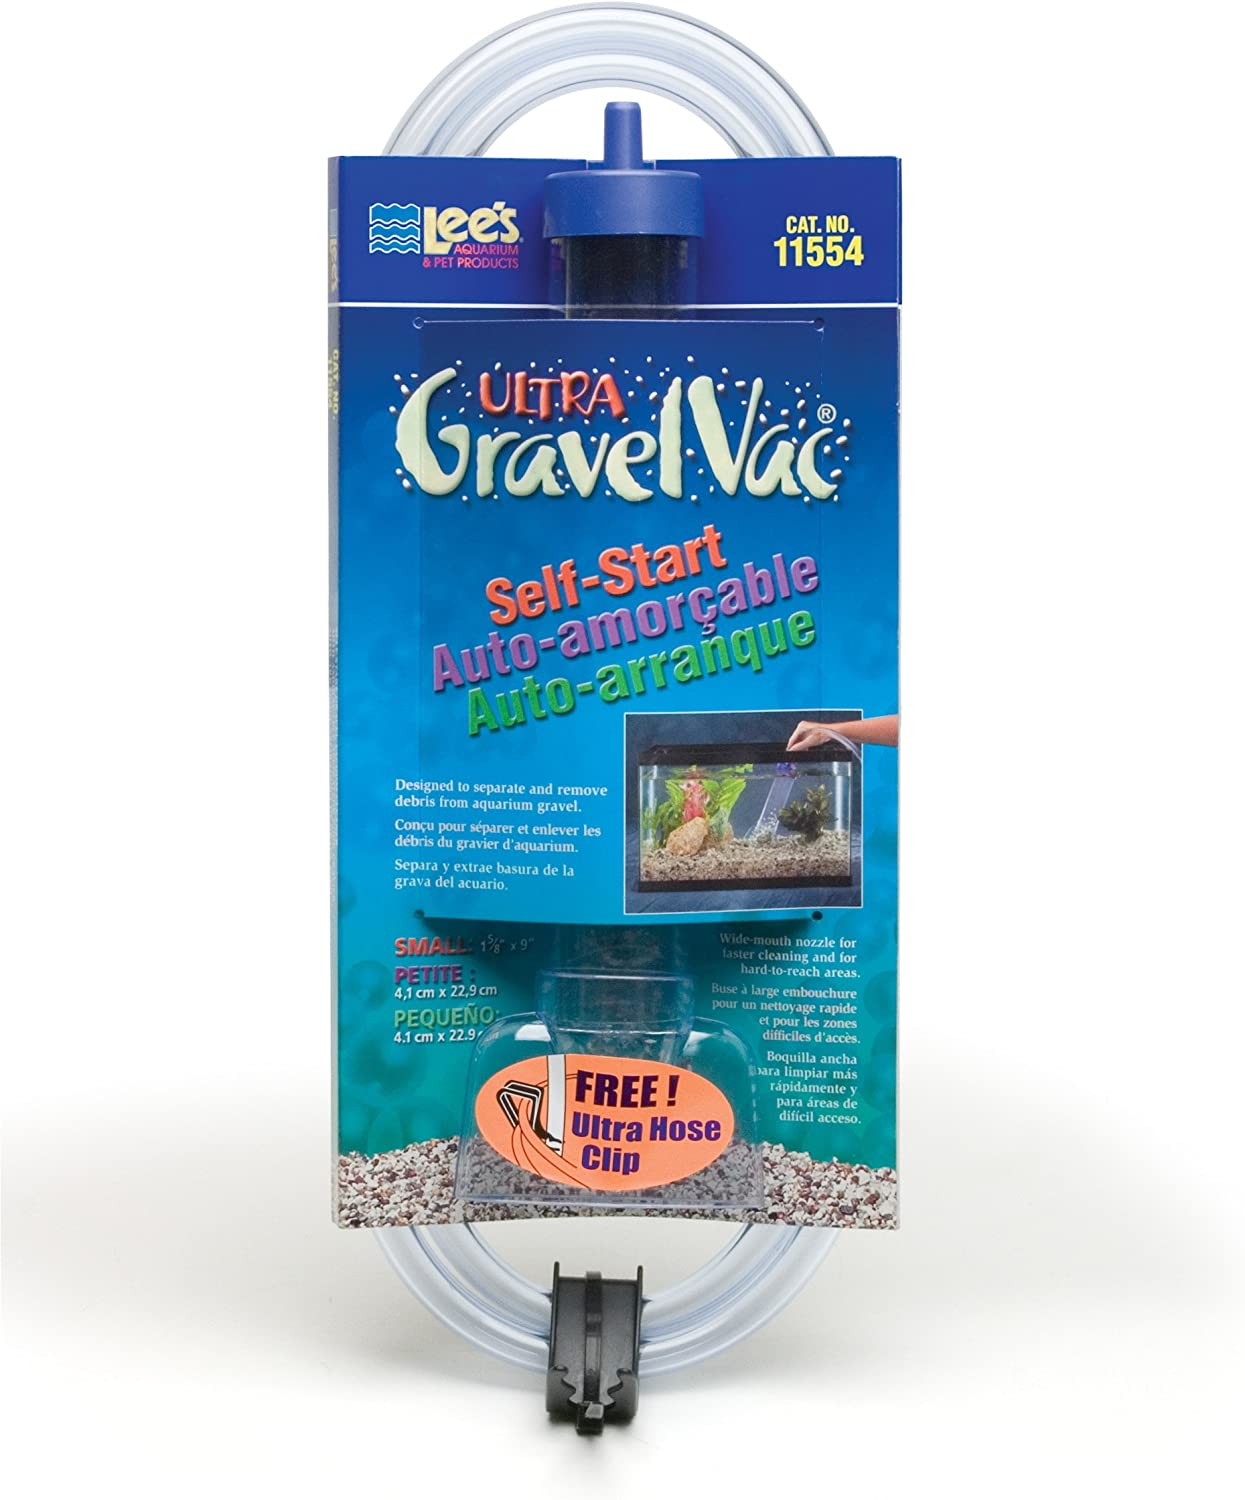 Lee's Ultra GravelVac Self-Start with Nozzle 9